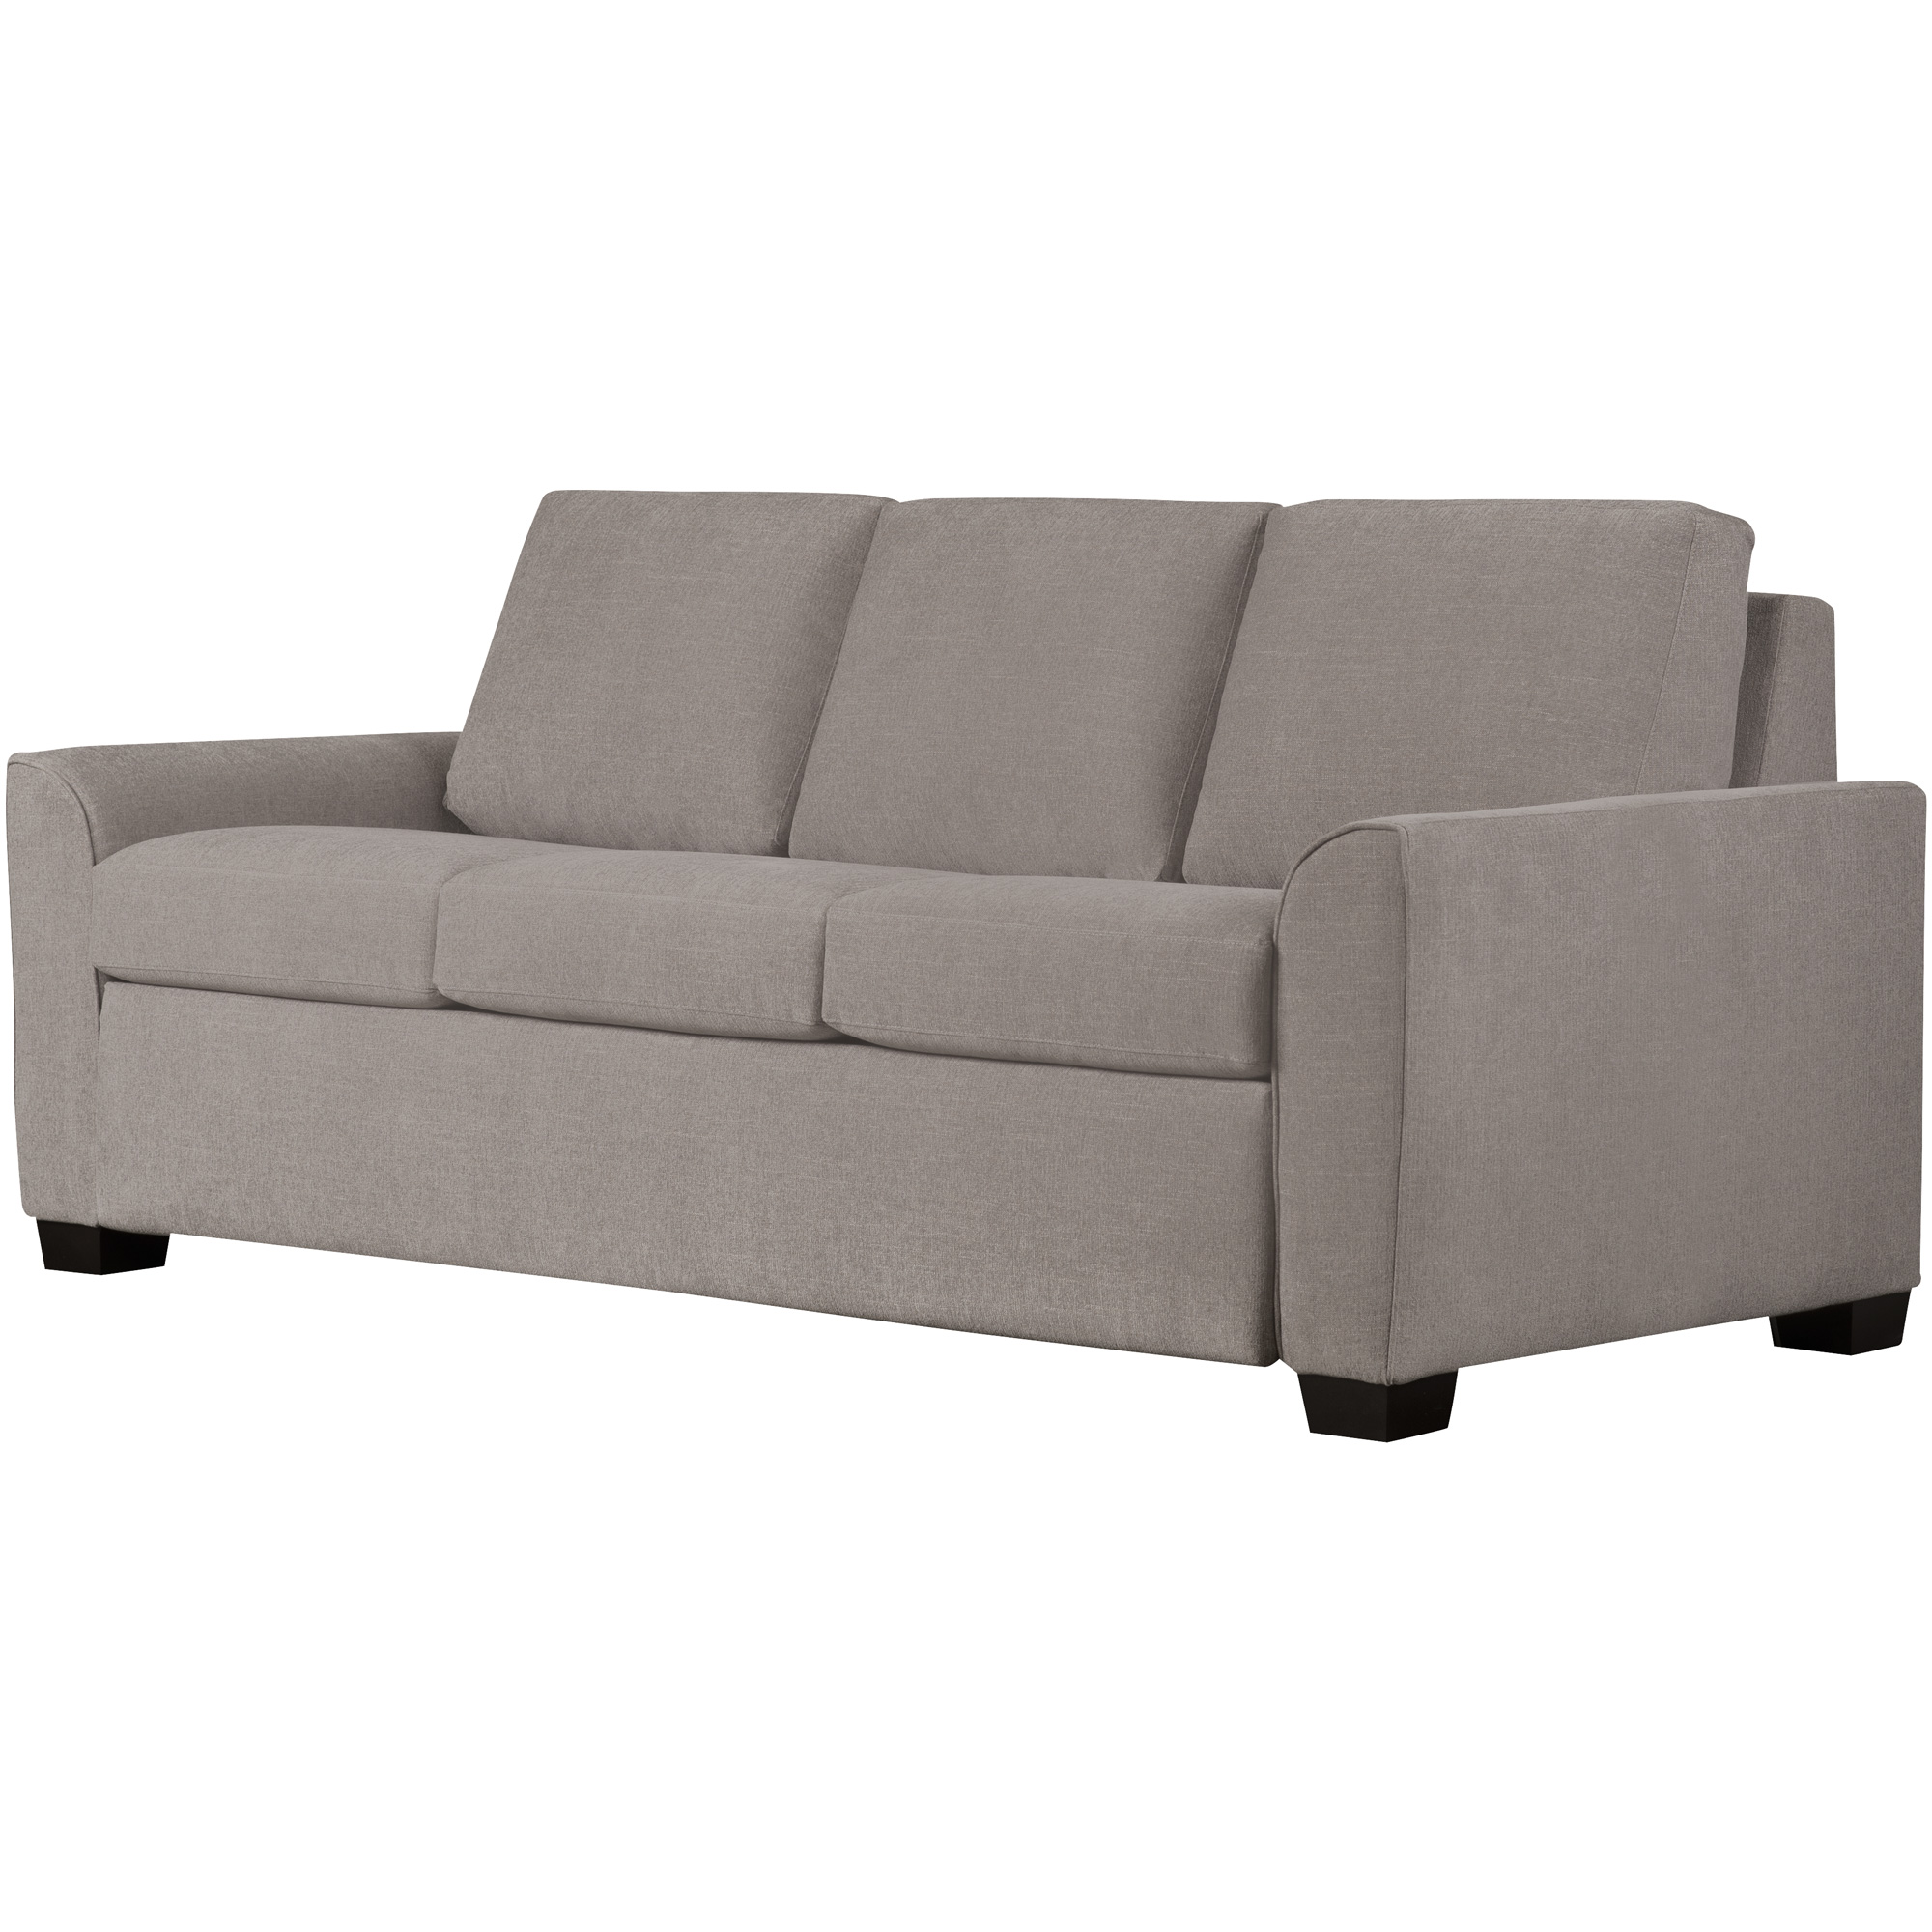 American Leather | Keeling Silver Queen Plus Sleeper Sofa